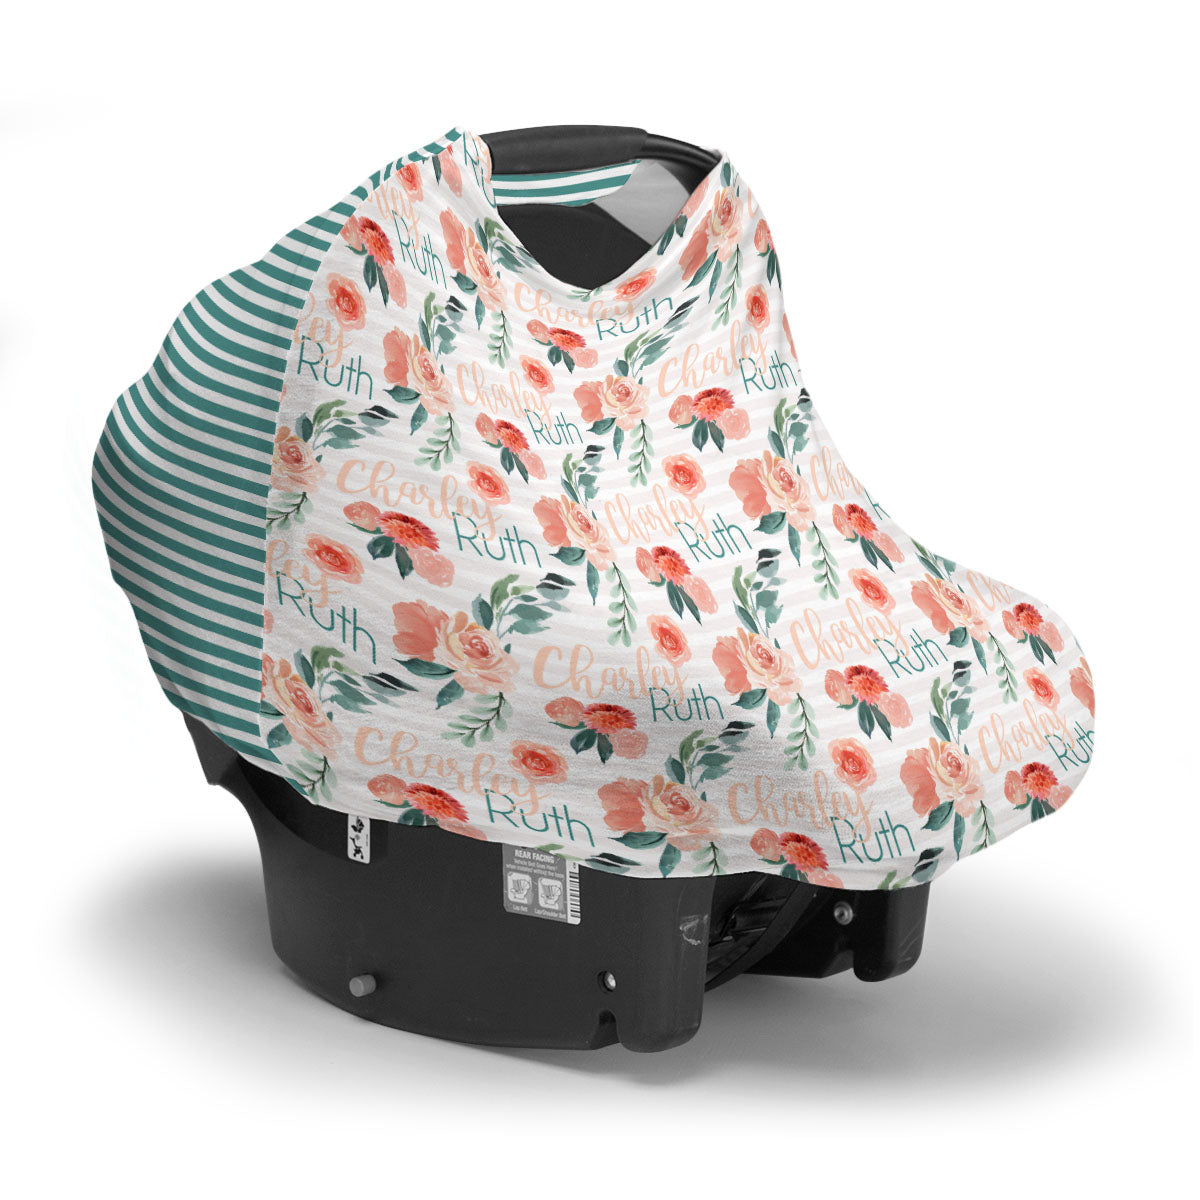 Charley Ruth | Car Seat Cover (Multi-Use)